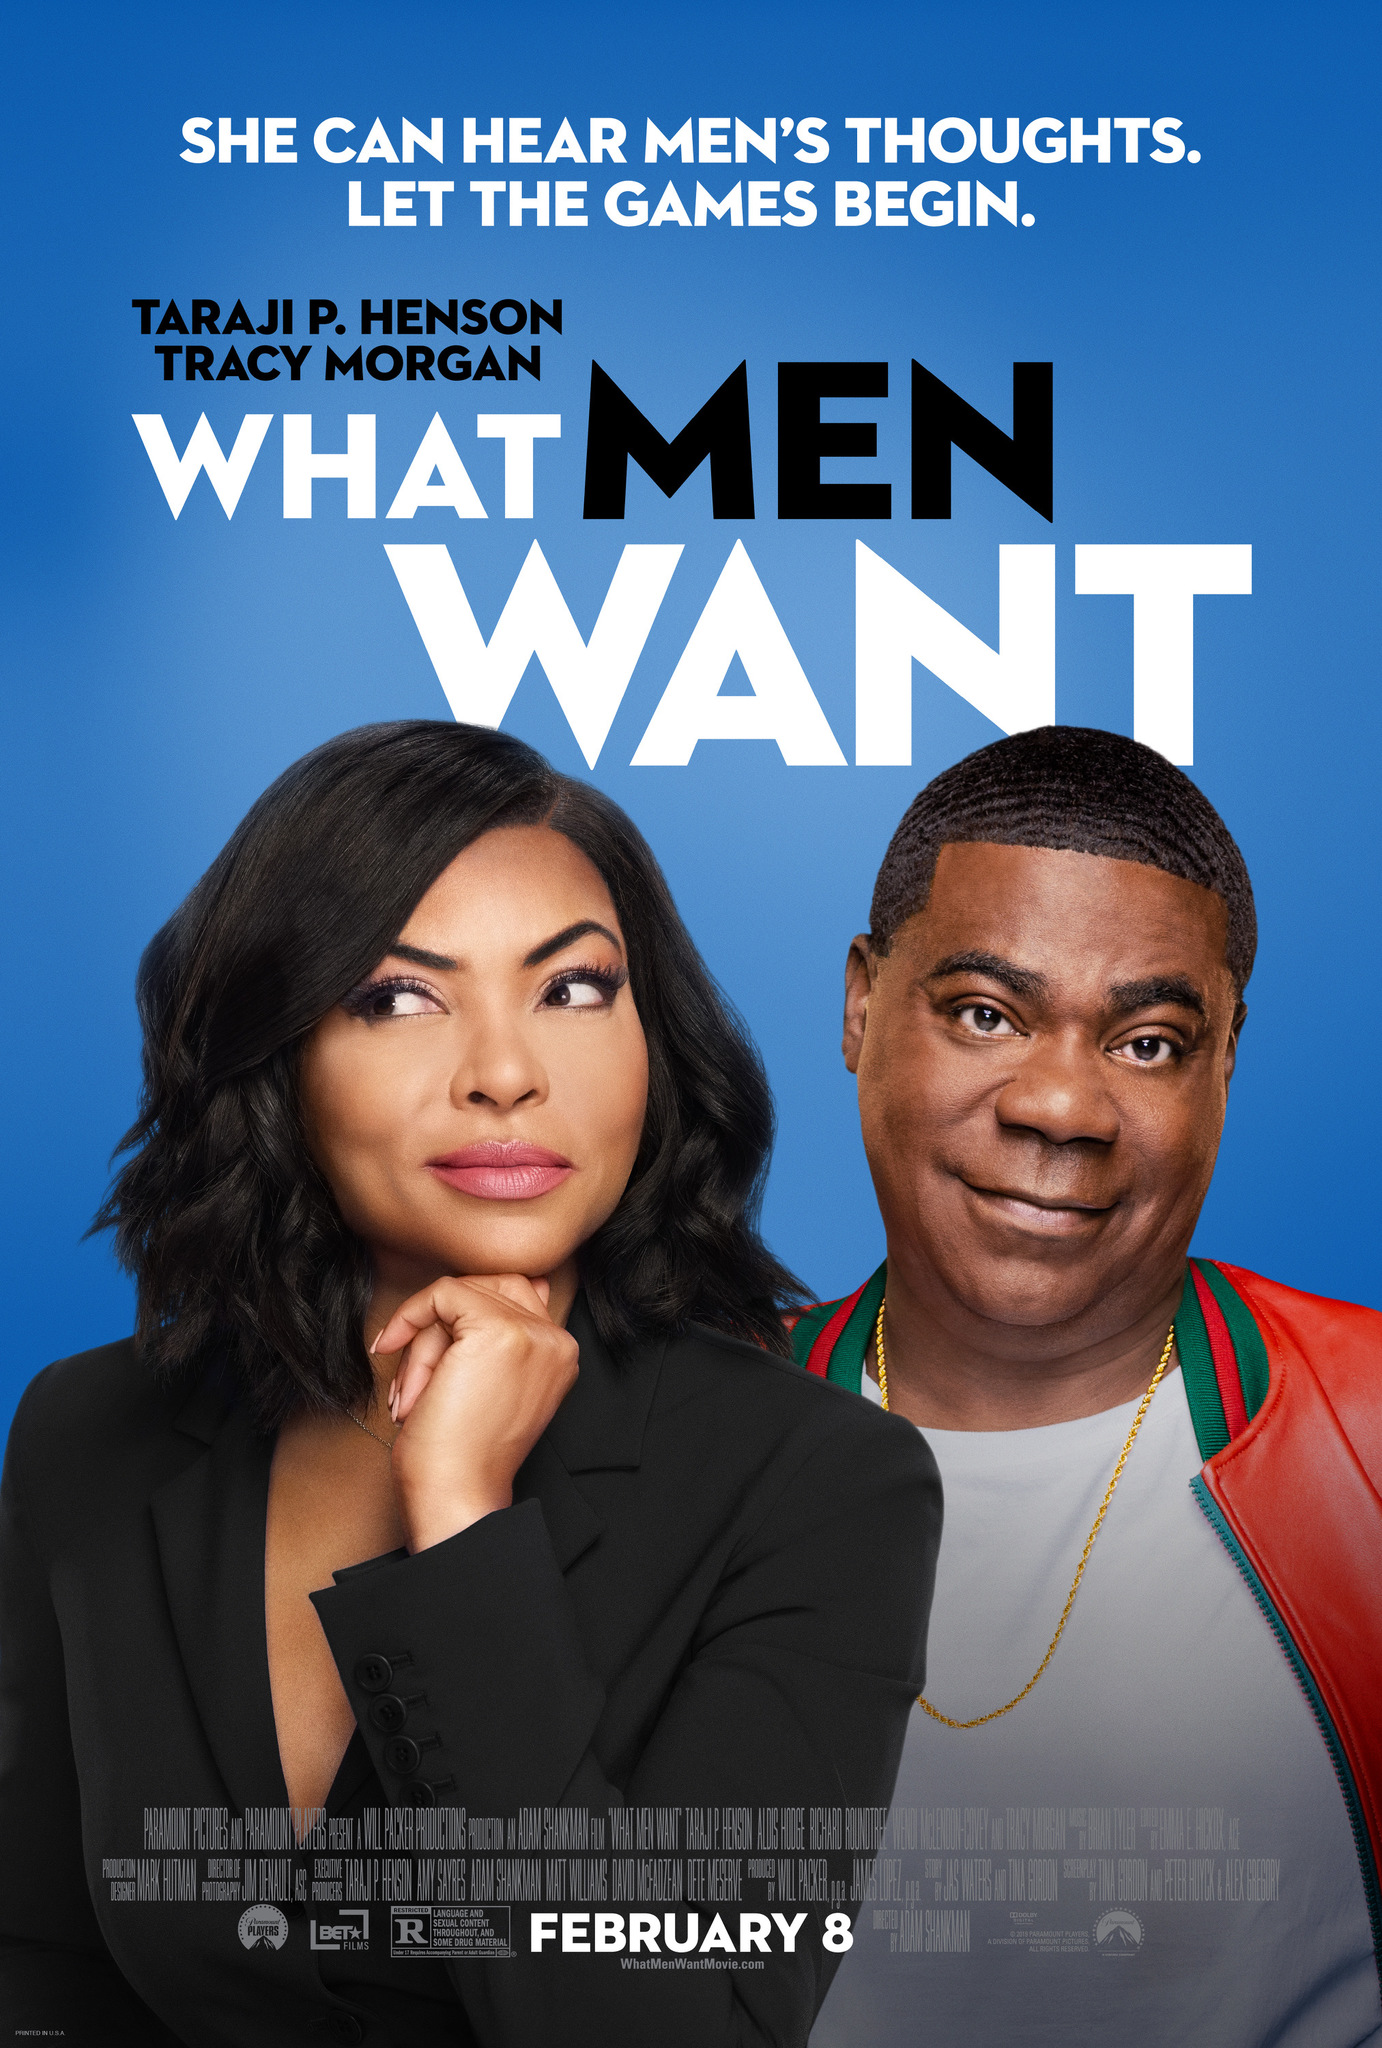 Ko nori vyrai (2019) / What Men Want